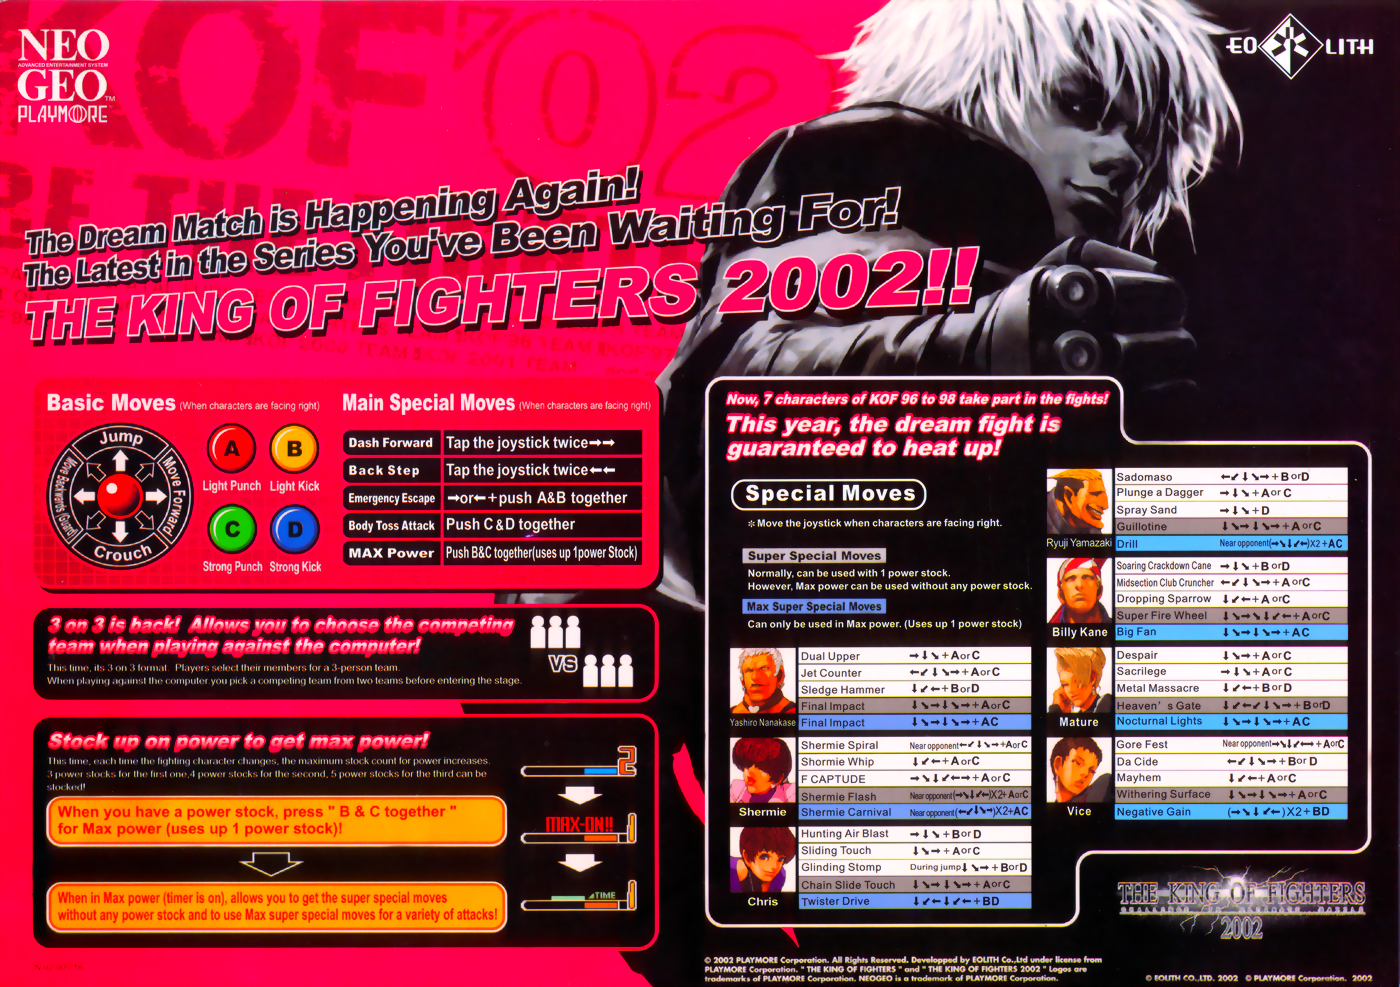 The King of Fighters 2002 flyer